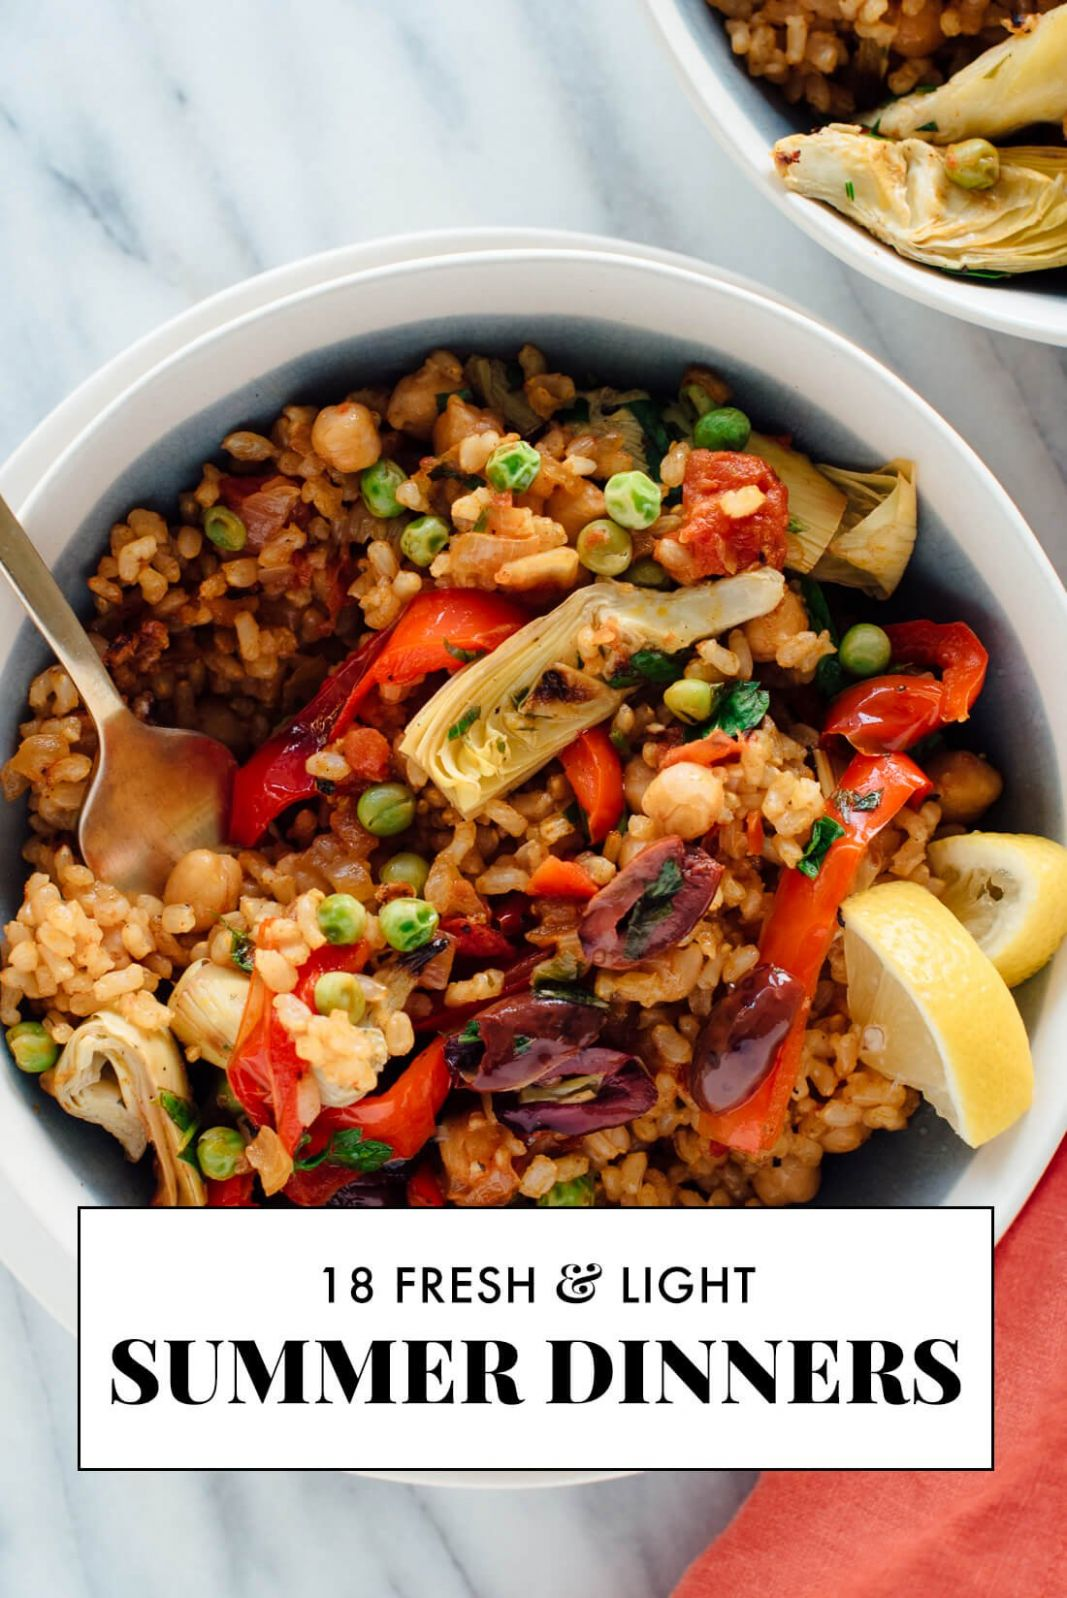 8 Light Summer Dinner Recipes - Cookie and Kate - Recipes Summer Meals